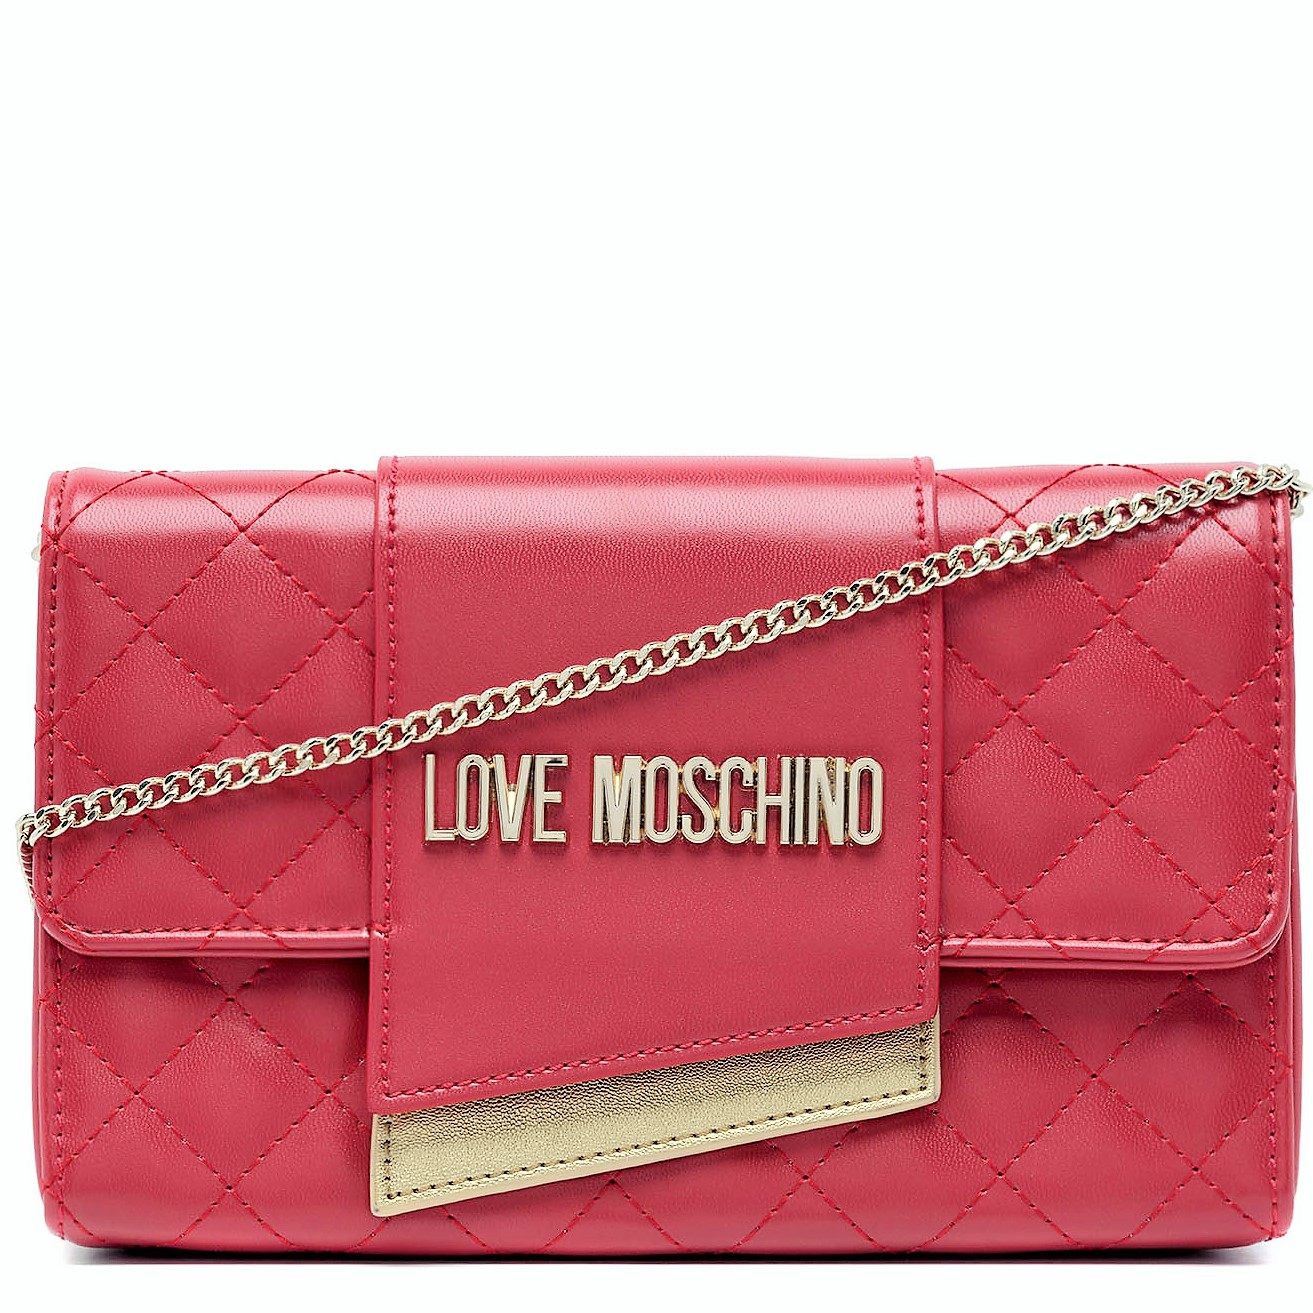 LOVE MOSCHINO BORSA DONNA QUILTED NAPPA PU ROSSO JC4295PP07KA0110 TRACOLLINA